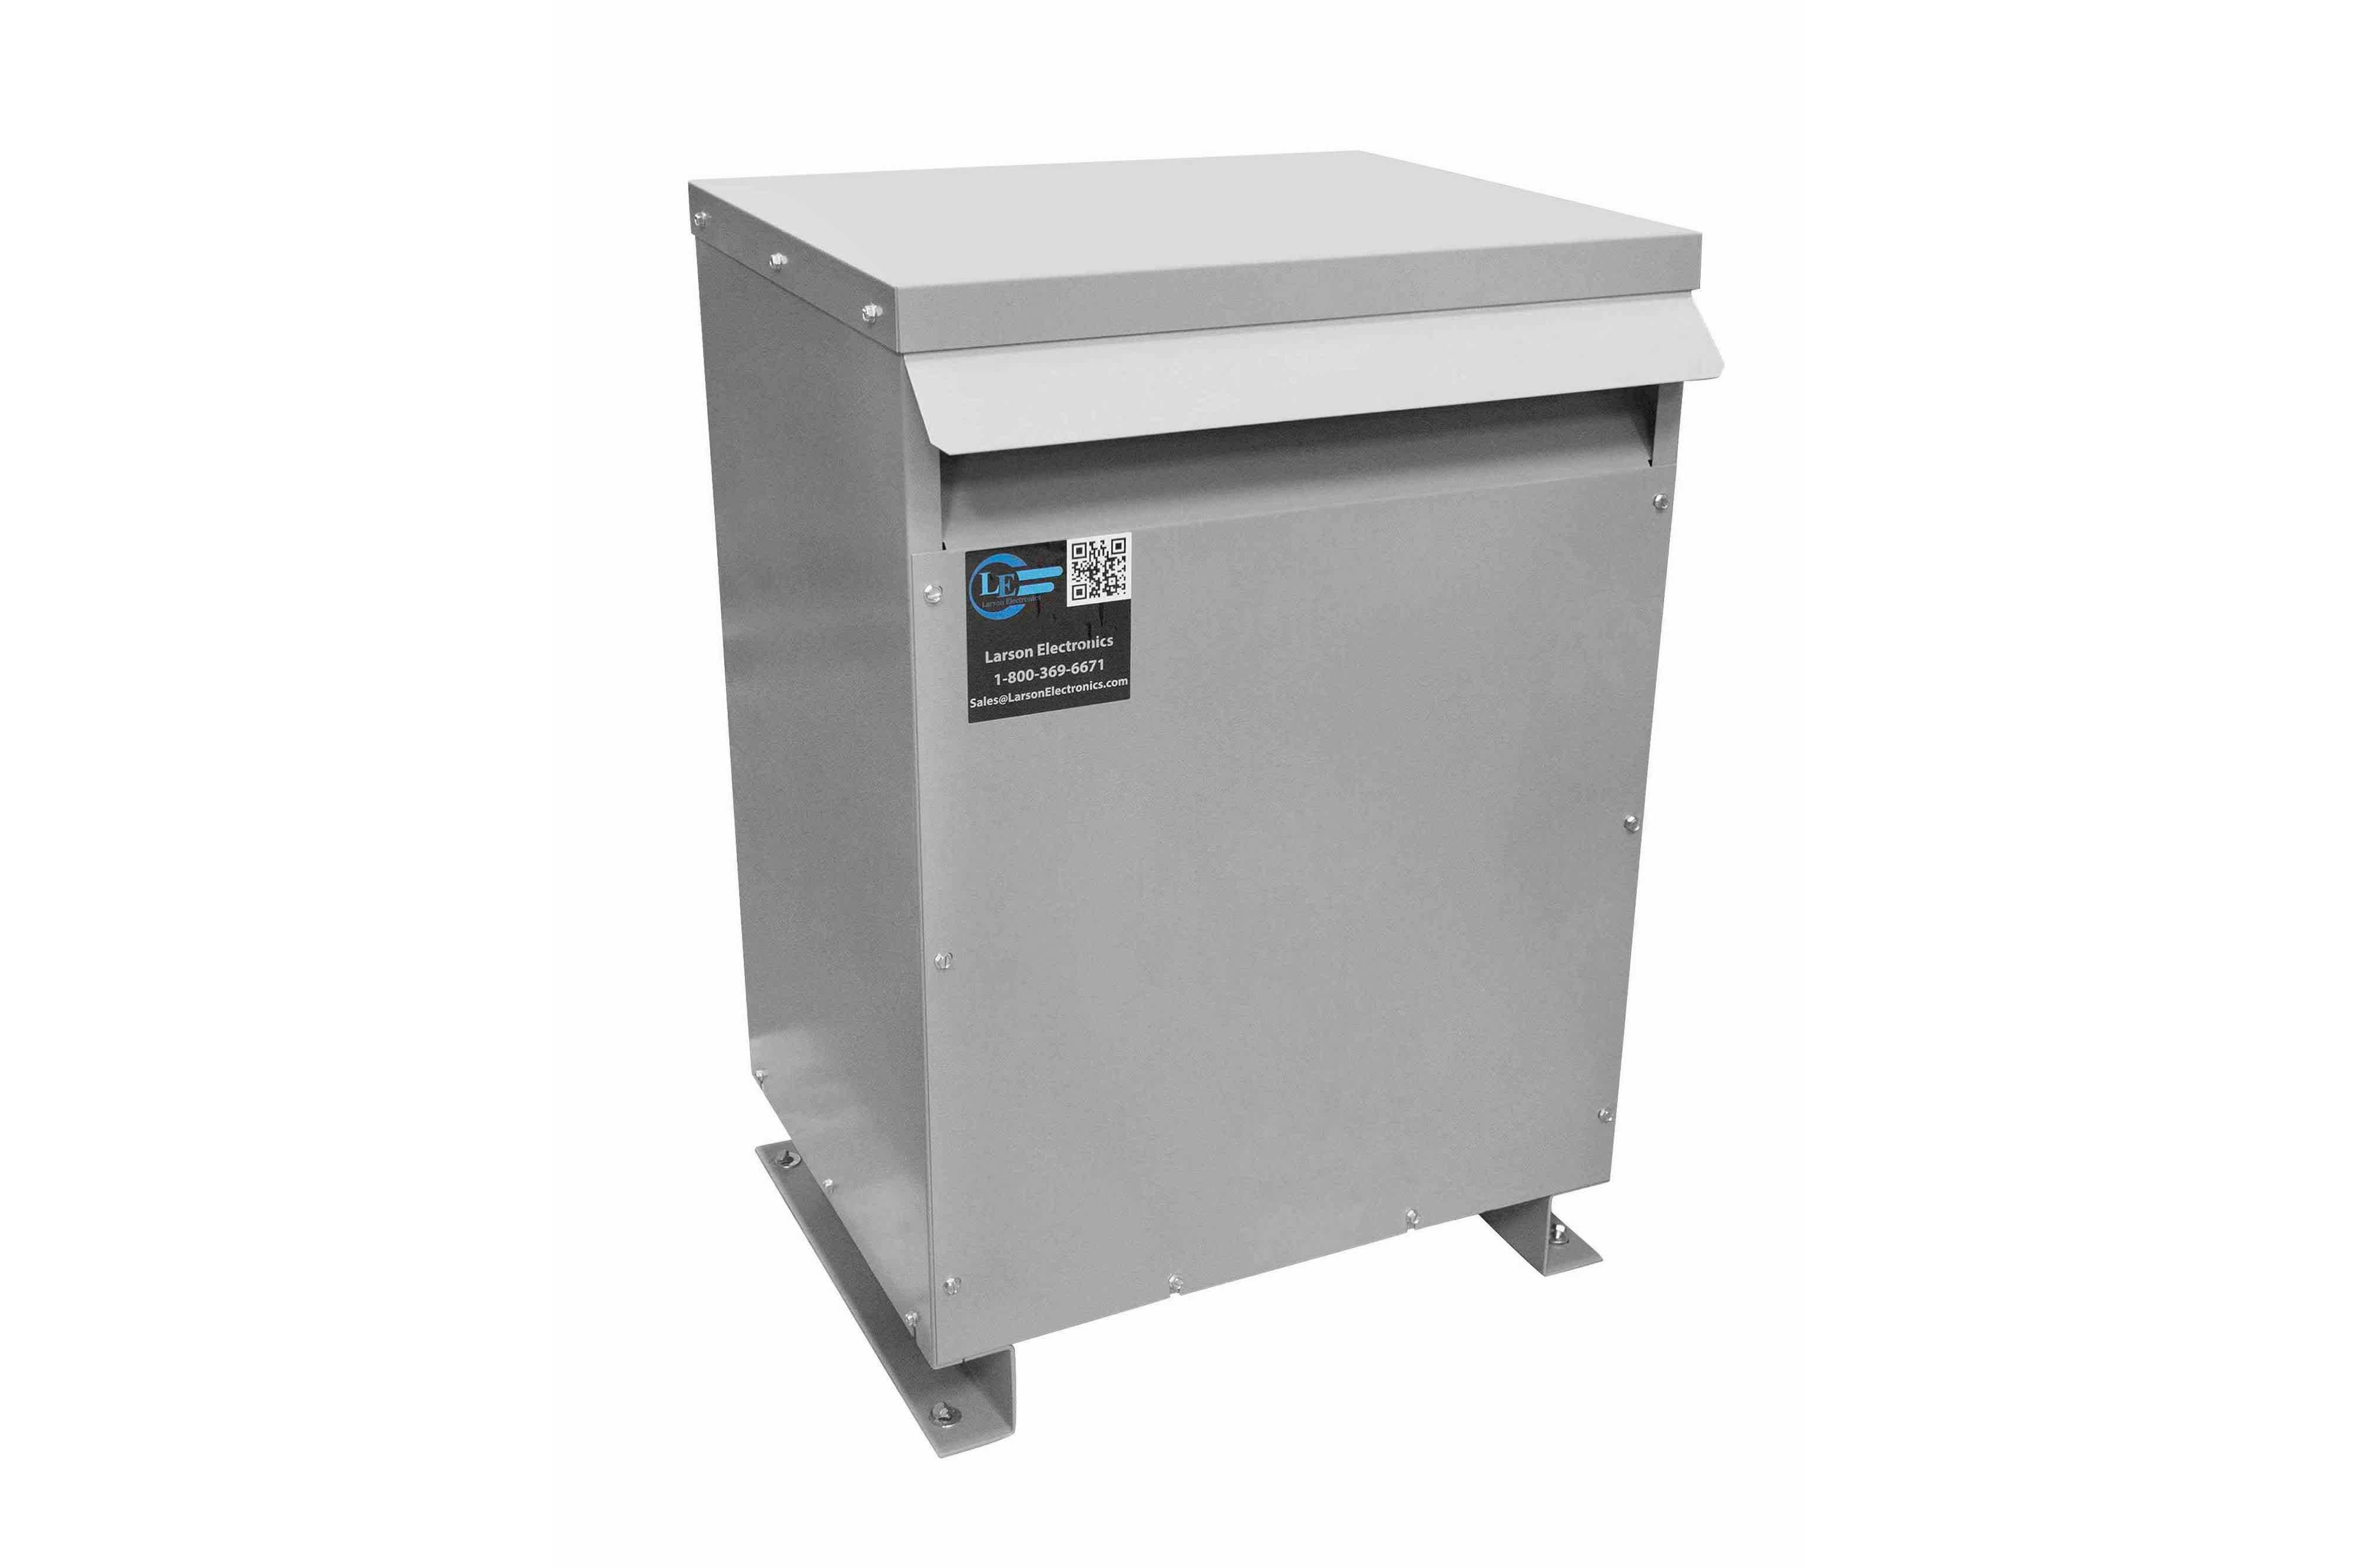 15 kVA 3PH Isolation Transformer, 460V Wye Primary, 415Y/240 Wye-N Secondary, N3R, Ventilated, 60 Hz